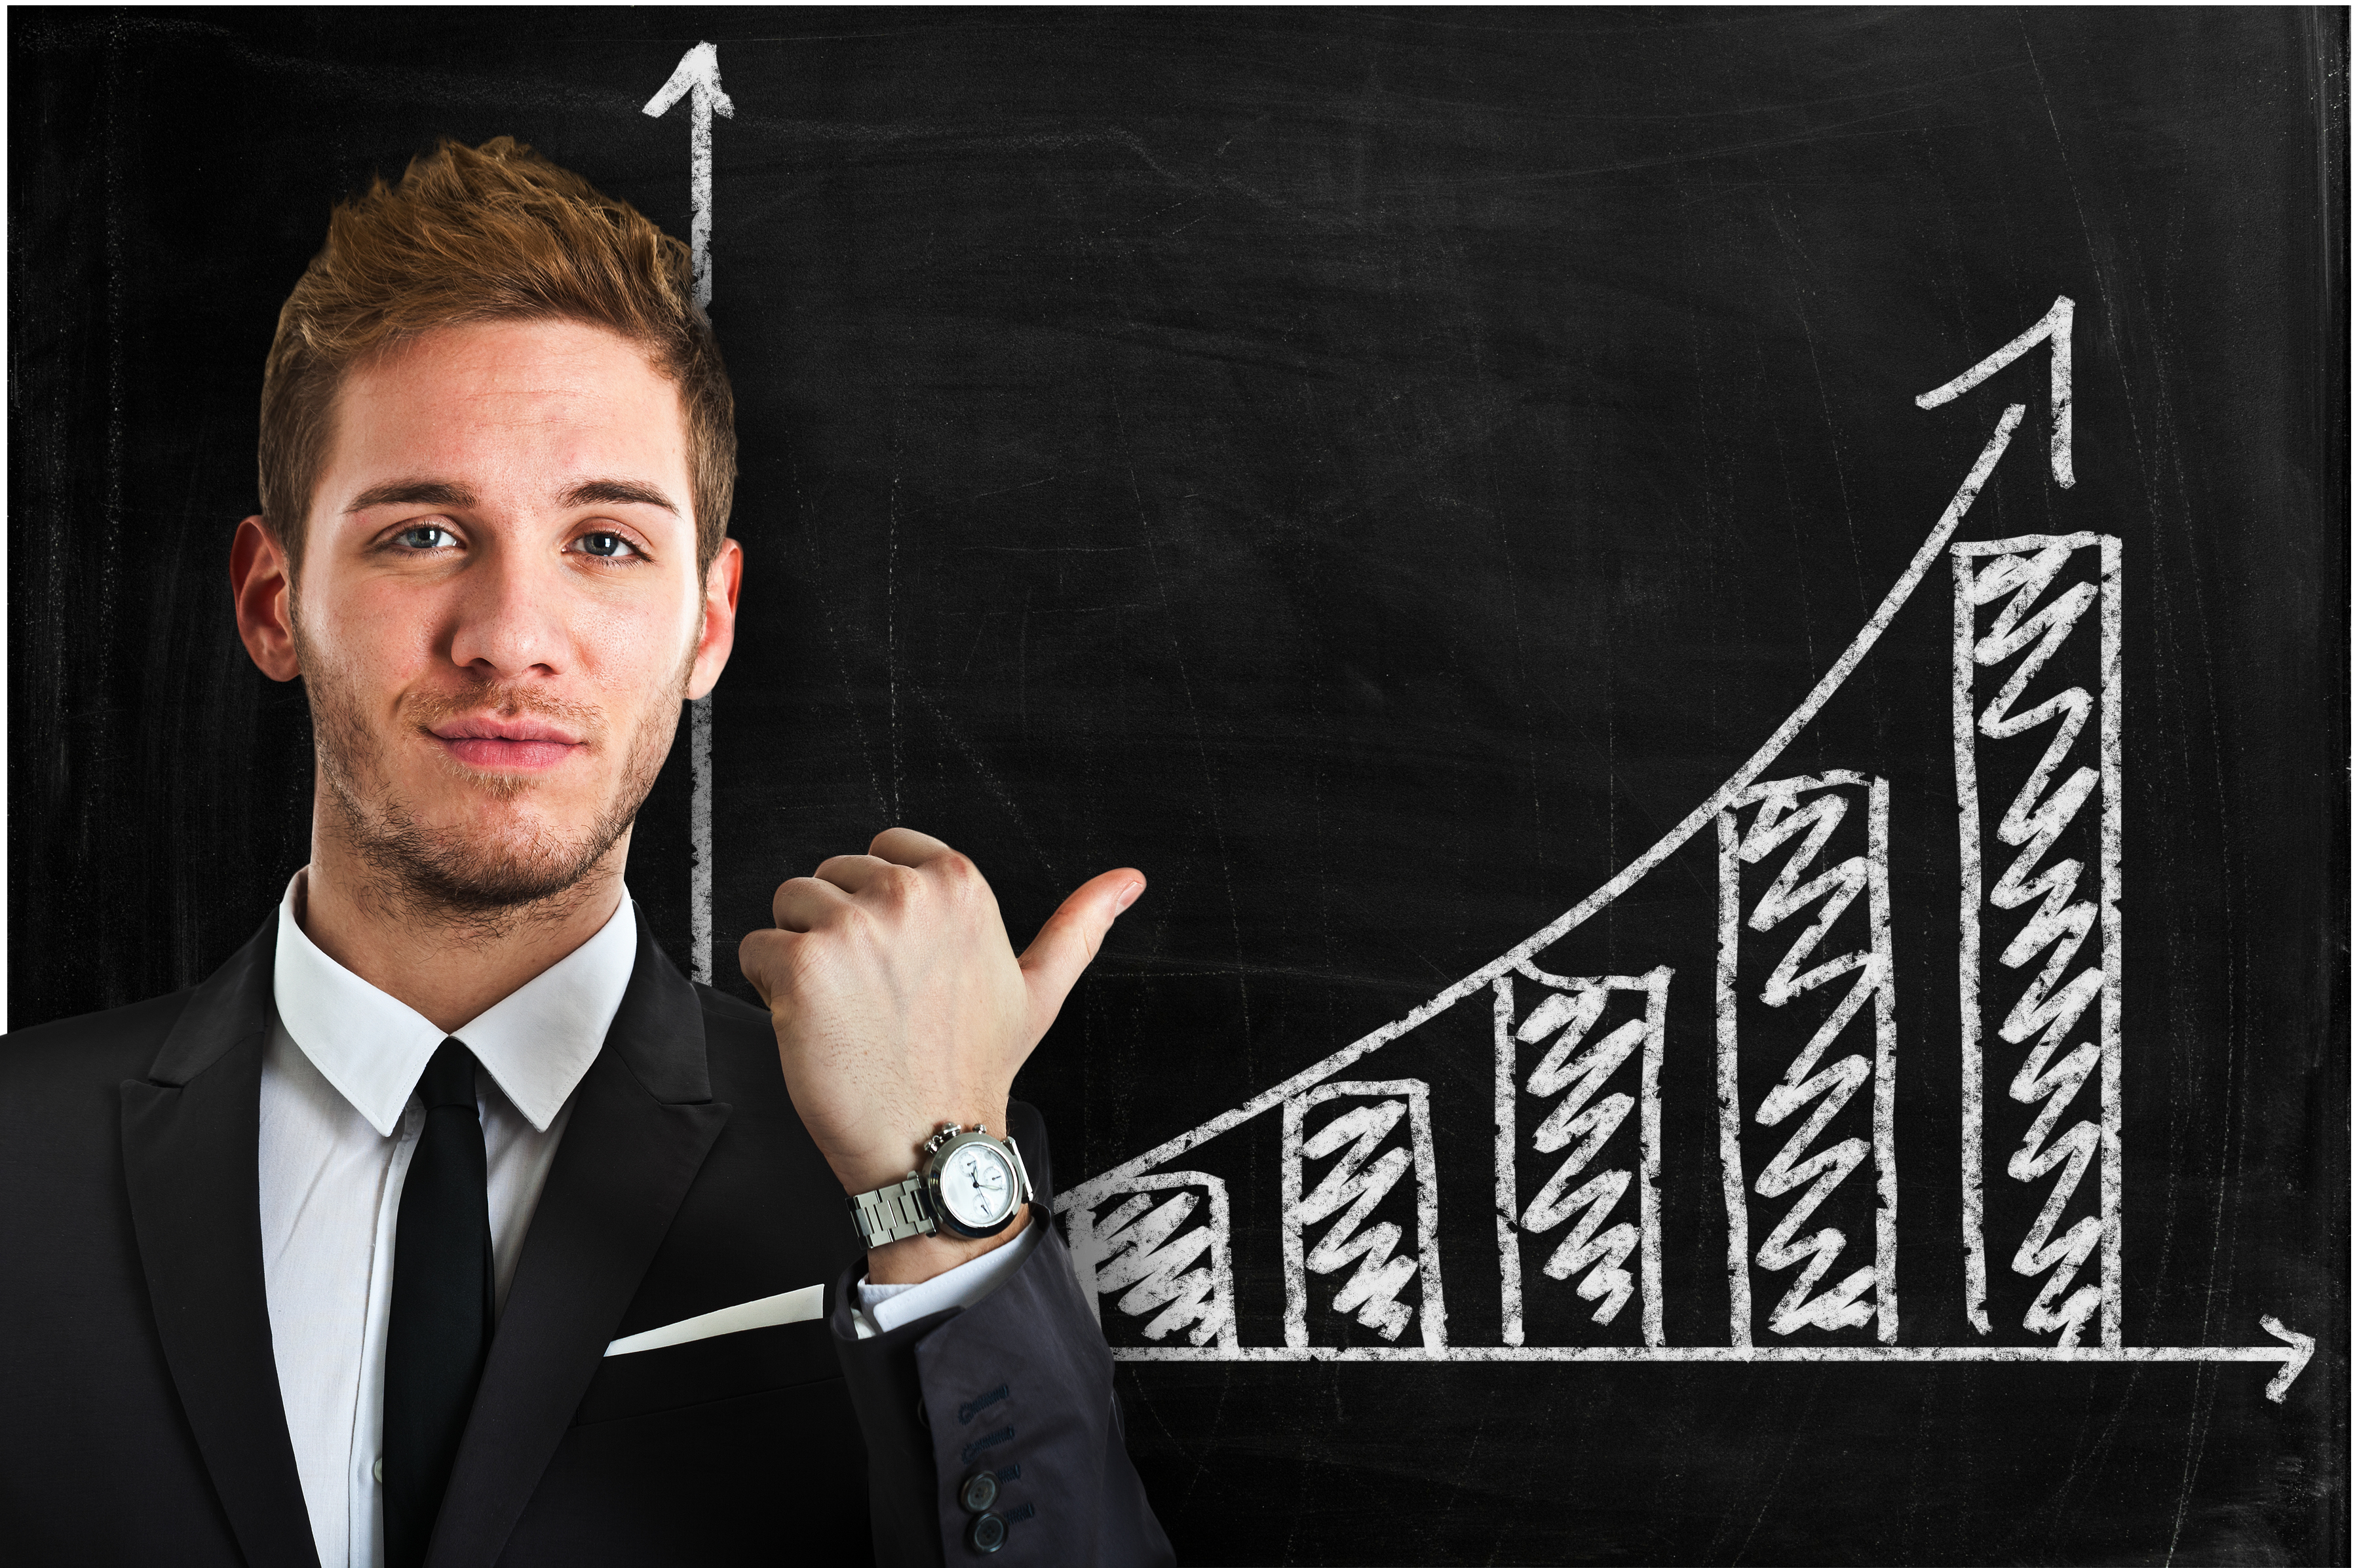 Increase Sales - 6 Tips to Increase Sales (With Little to No Added Expenses)